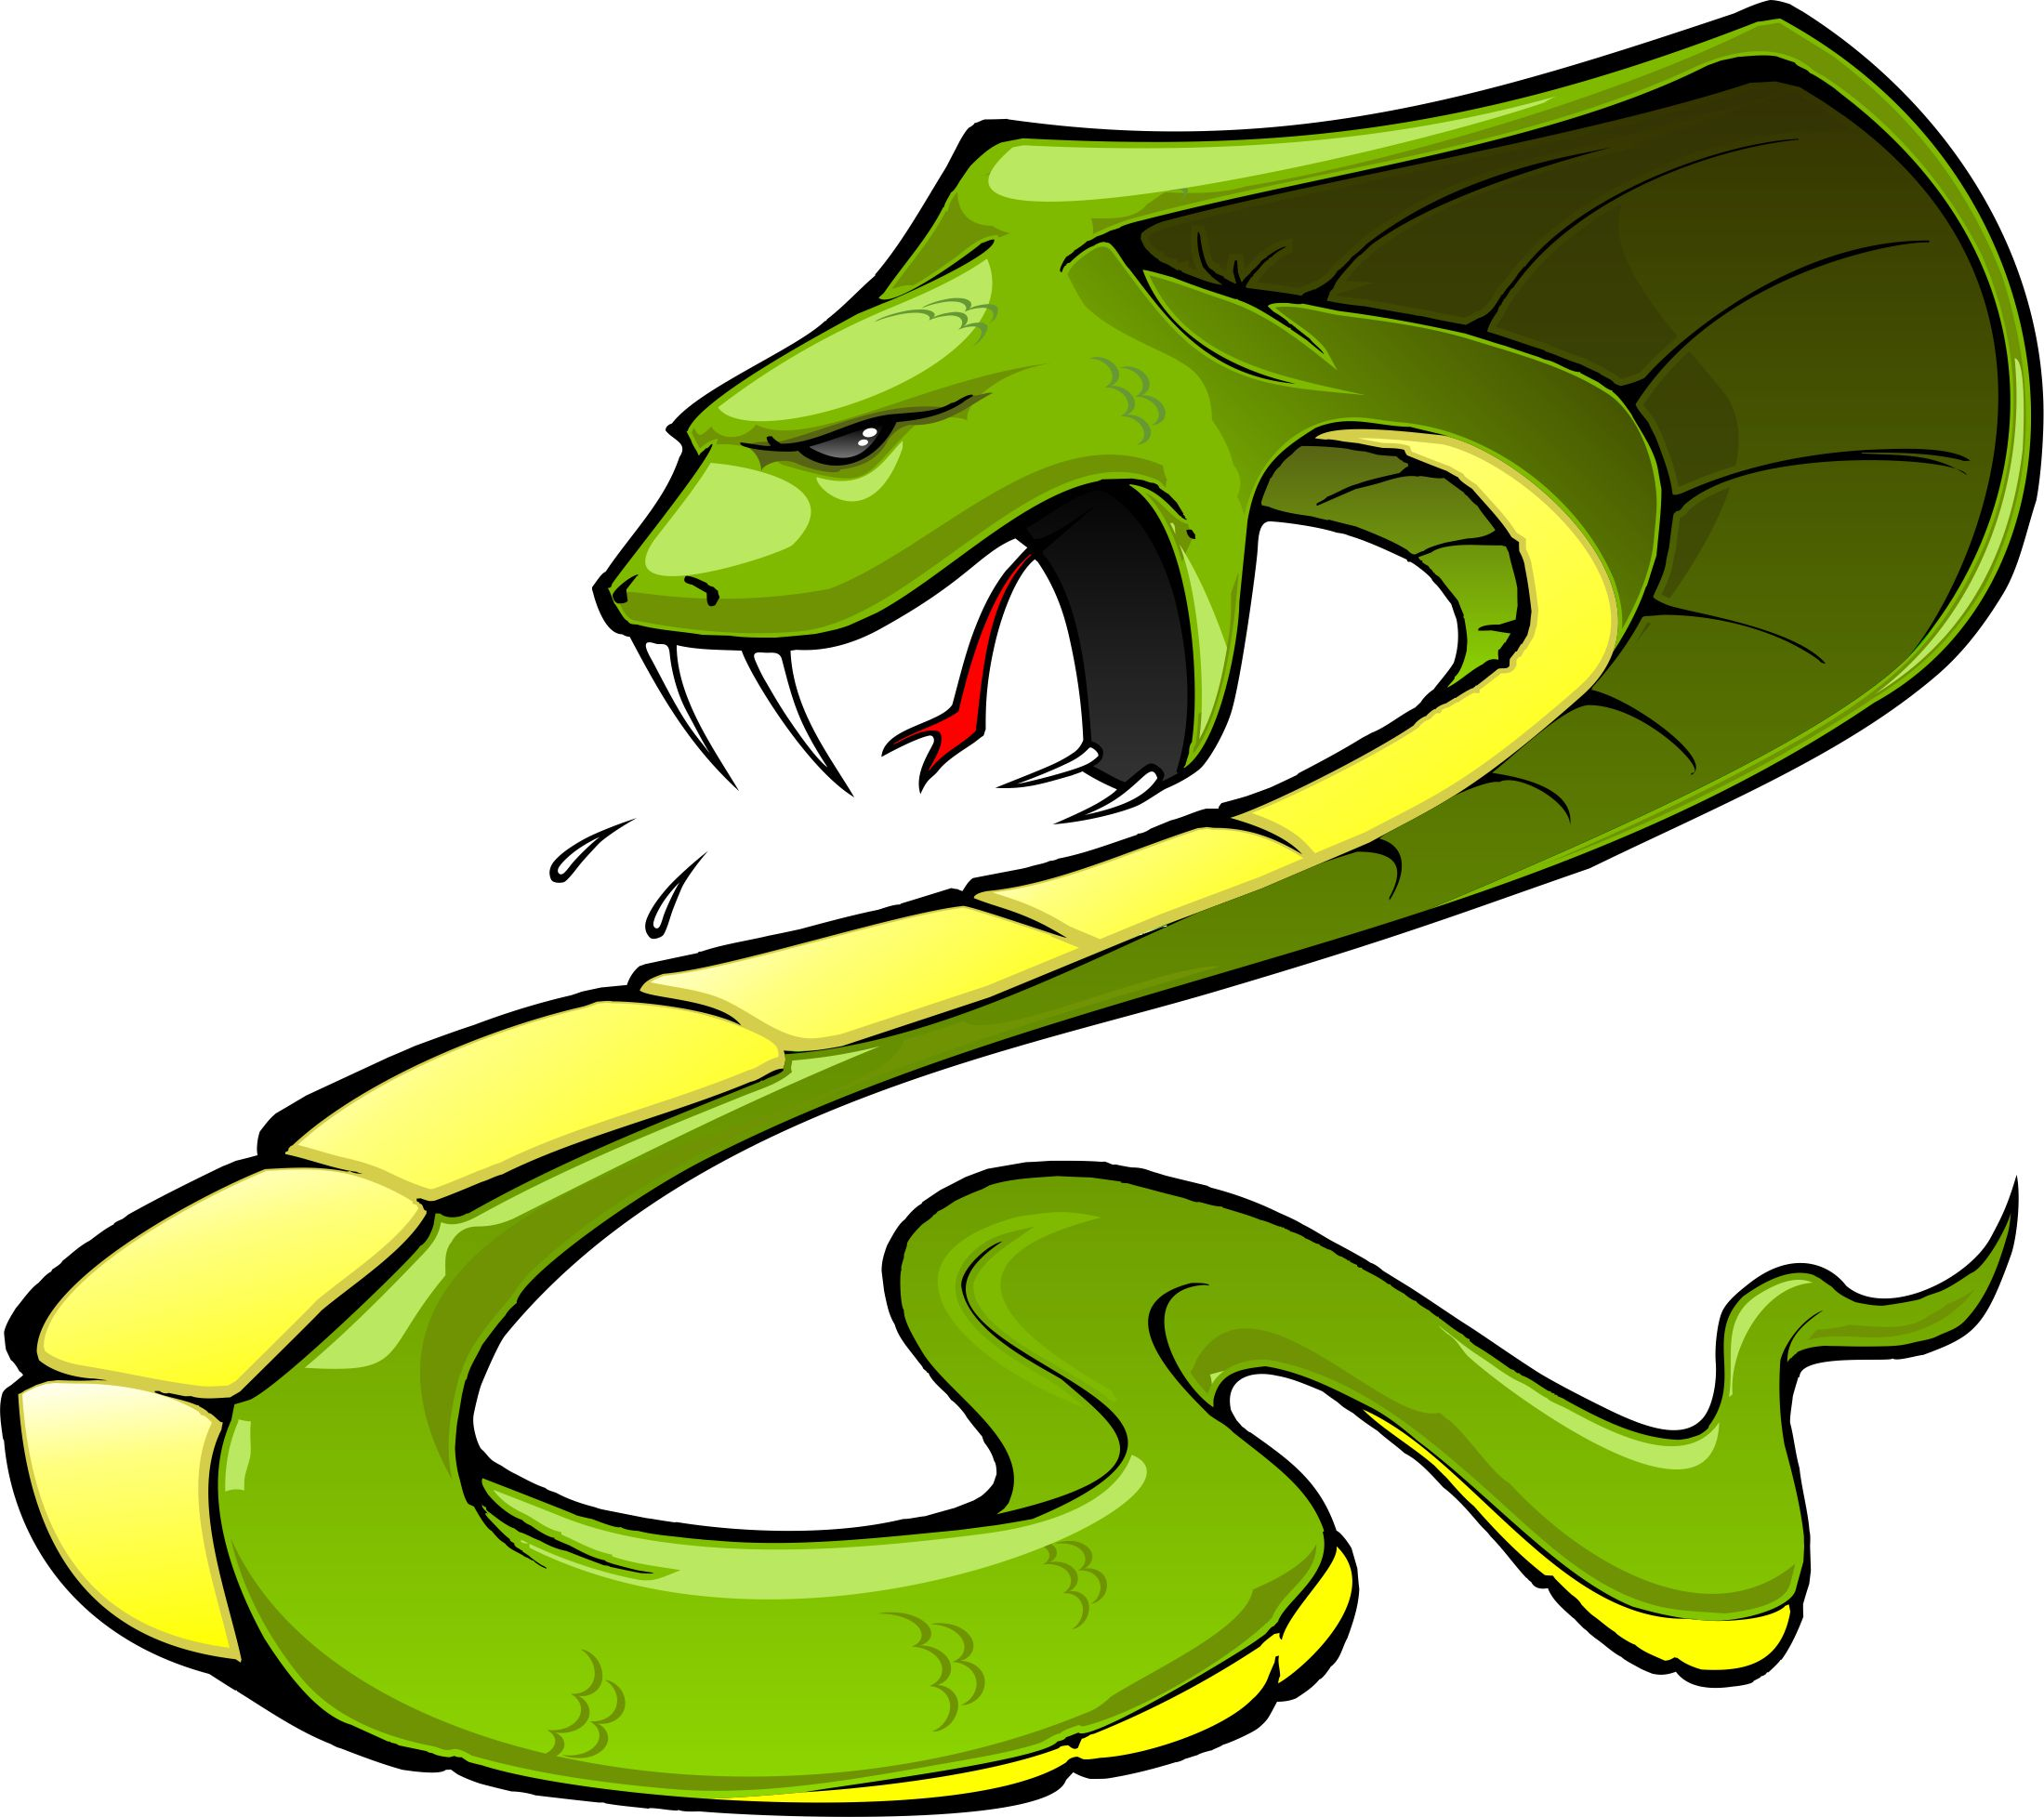 Viper fangs clipart clipart royalty free library Free Snake Head Cliparts, Download Free Clip Art, Free Clip ... clipart royalty free library